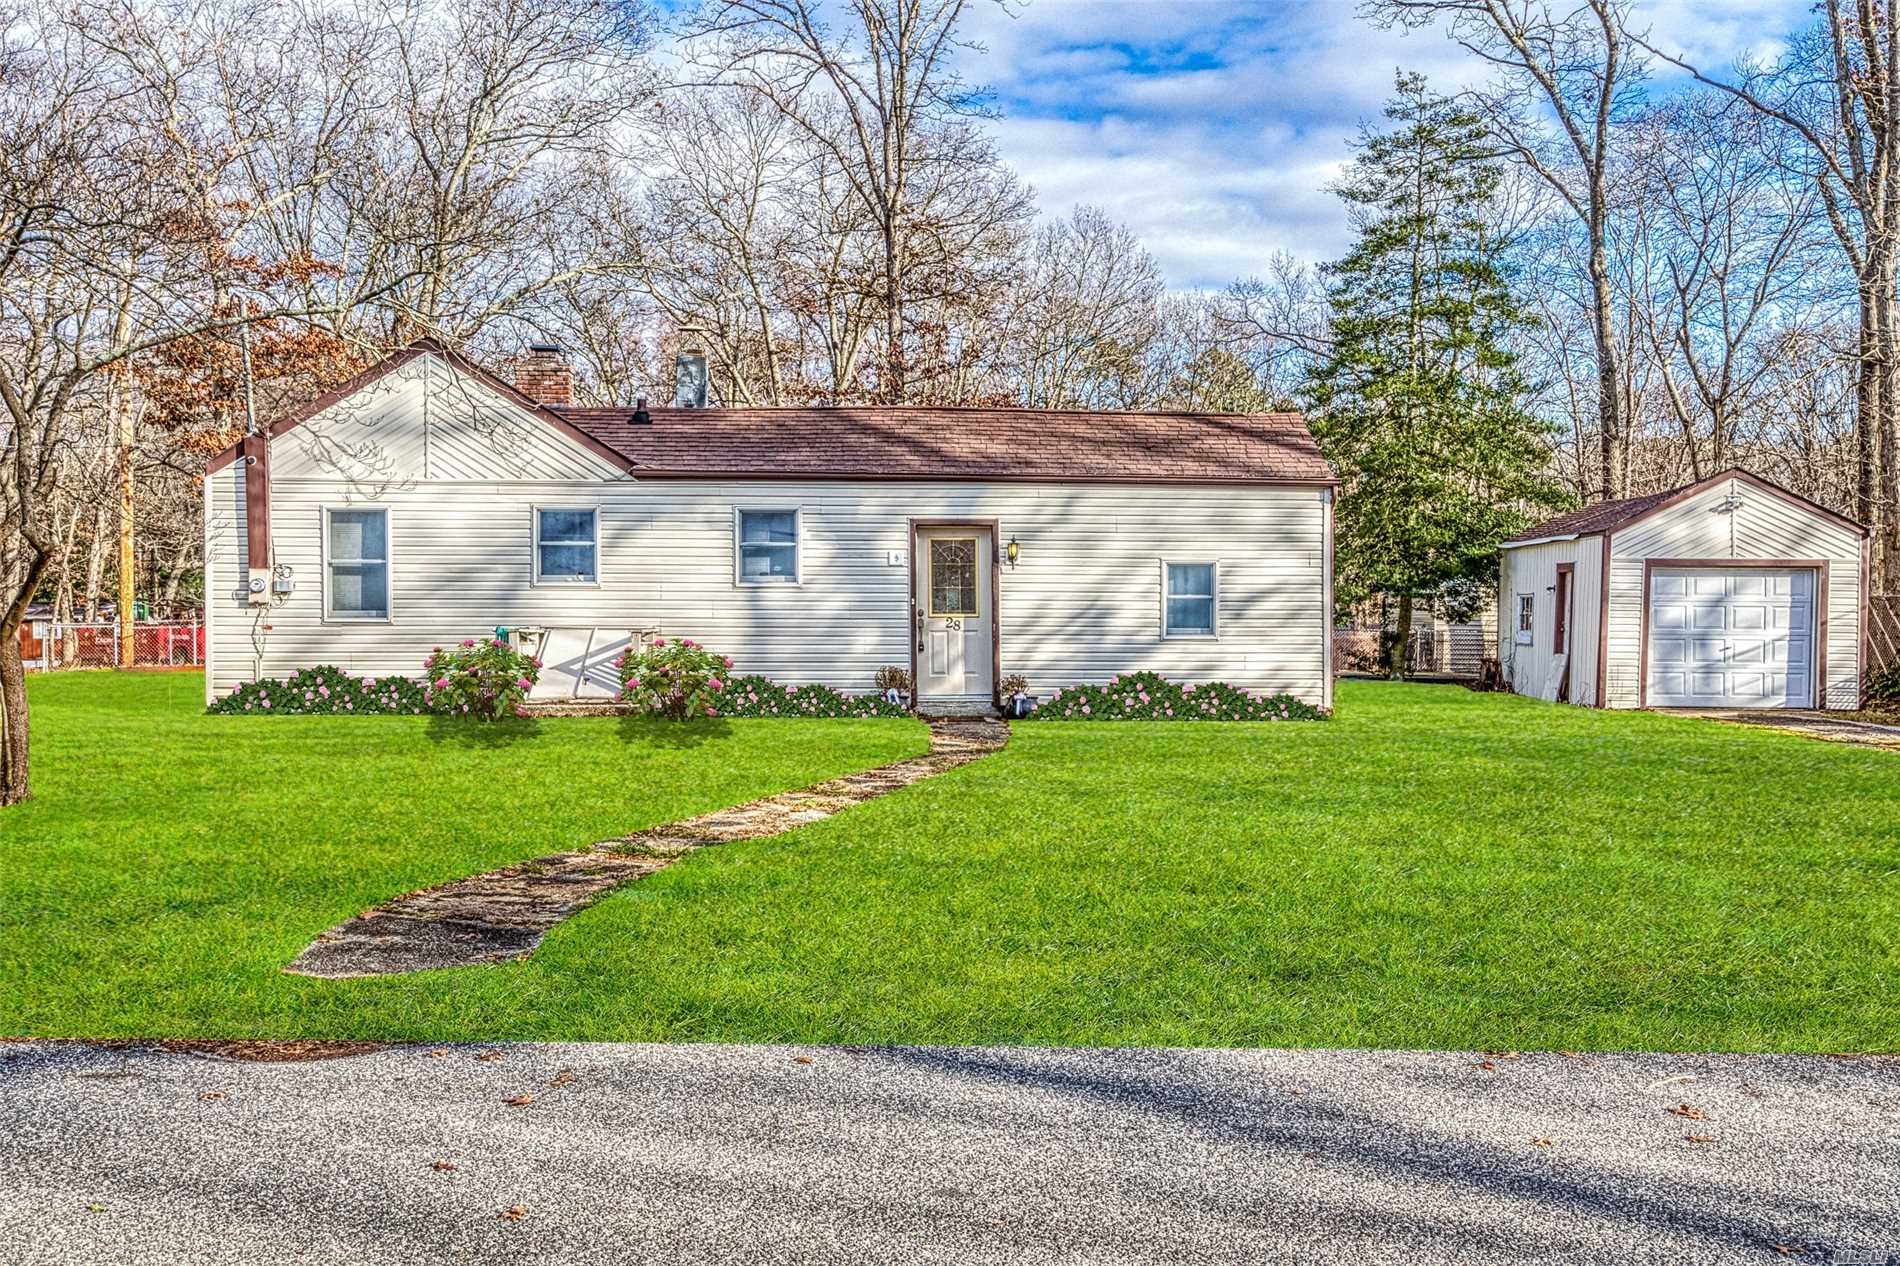 Perfect Starter Or Retirement Is This 3 Bedroom, 2 Full Bath Ranch With Endless Possibilities To Make This Your Own! Den With Brick Wall Fireplace, Vaulted Ceilings, Skylight, French Doors, & Hi Hats, Eik W/Vaulted Ceilings & Hi Hats, Hardwood Floors Throughout, All Located On .25/Acre Corner Property With Detached 1 Car Garage & Plenty Of Parking In Desired Lake Panamoka!